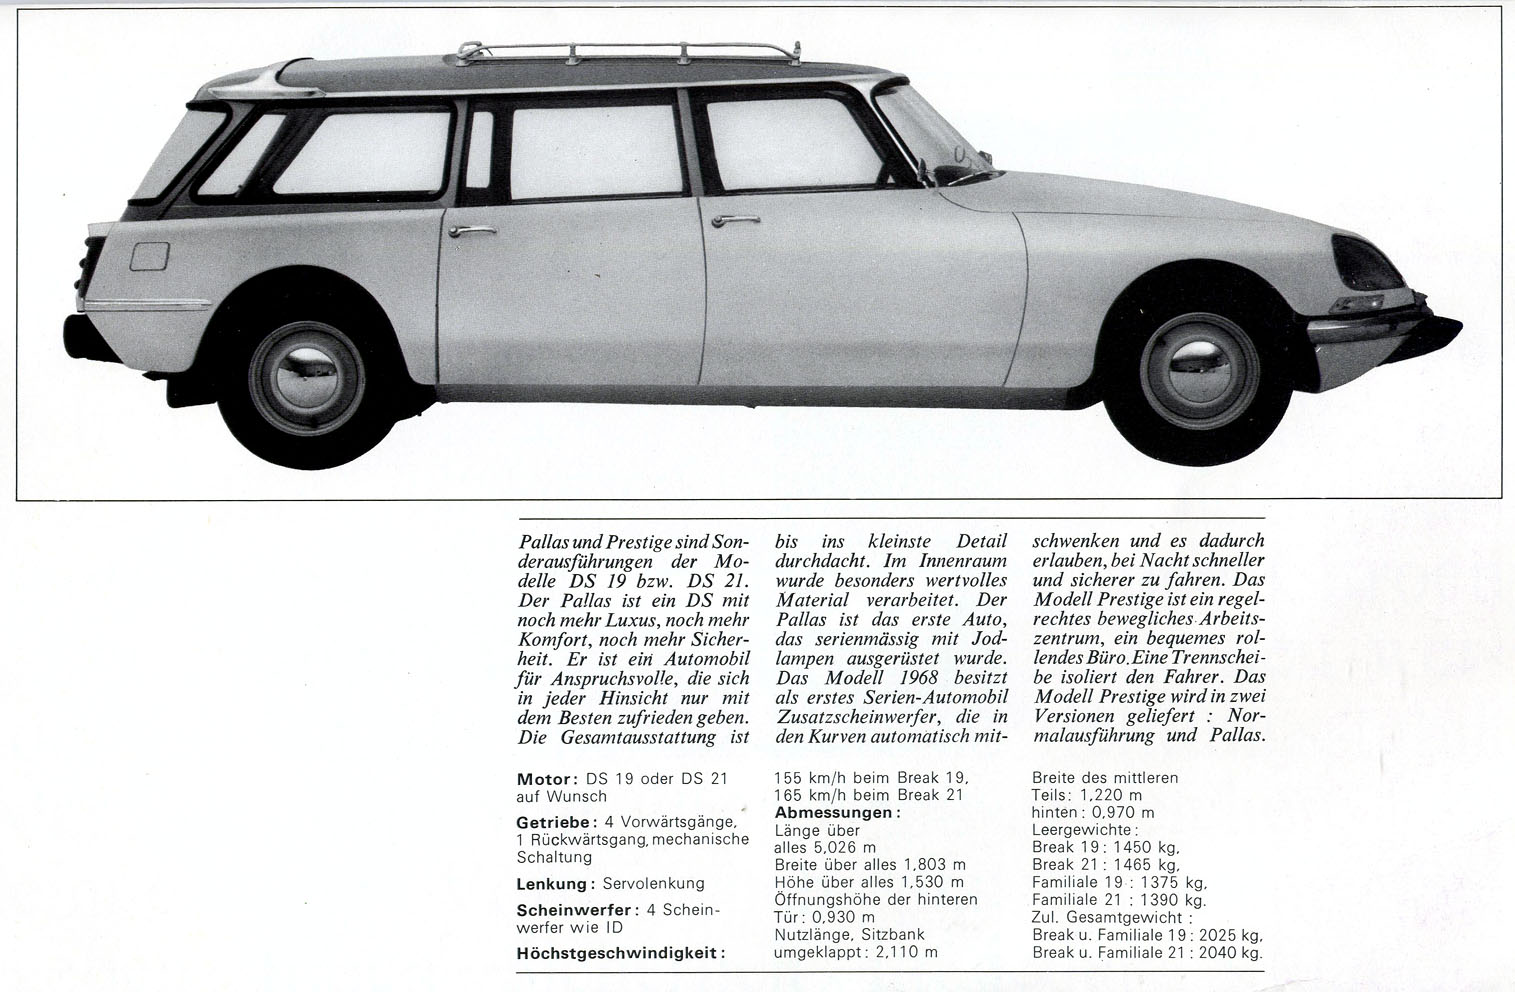 Citroen DS front bonet view